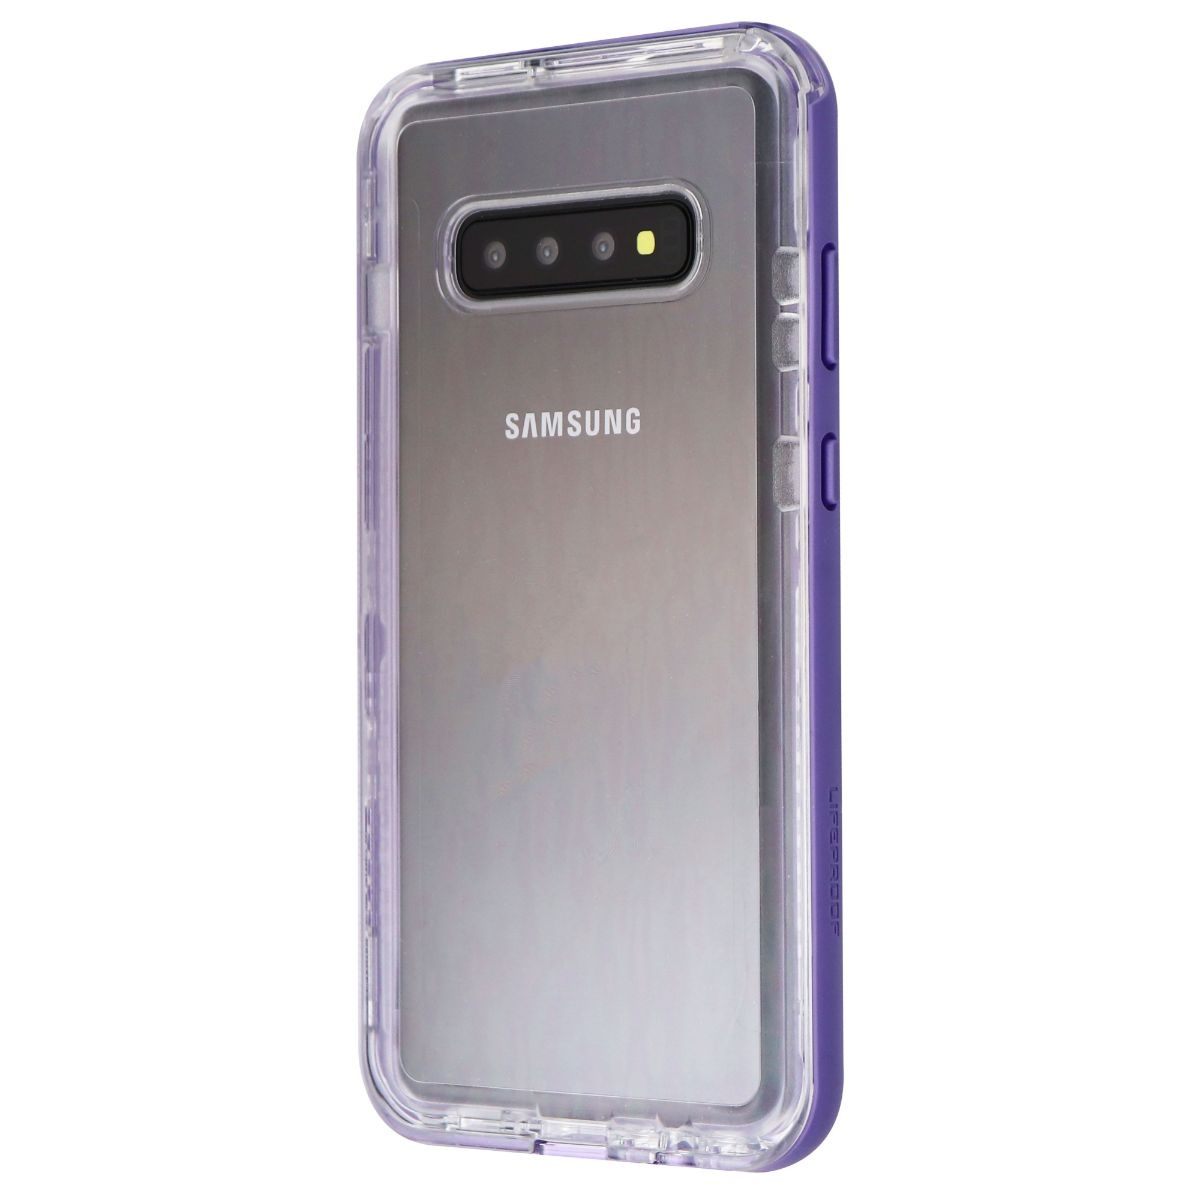 LifeProof Next Series Case for Samsung Galaxy S10+ (Plus) - Clear / Ultra Purple